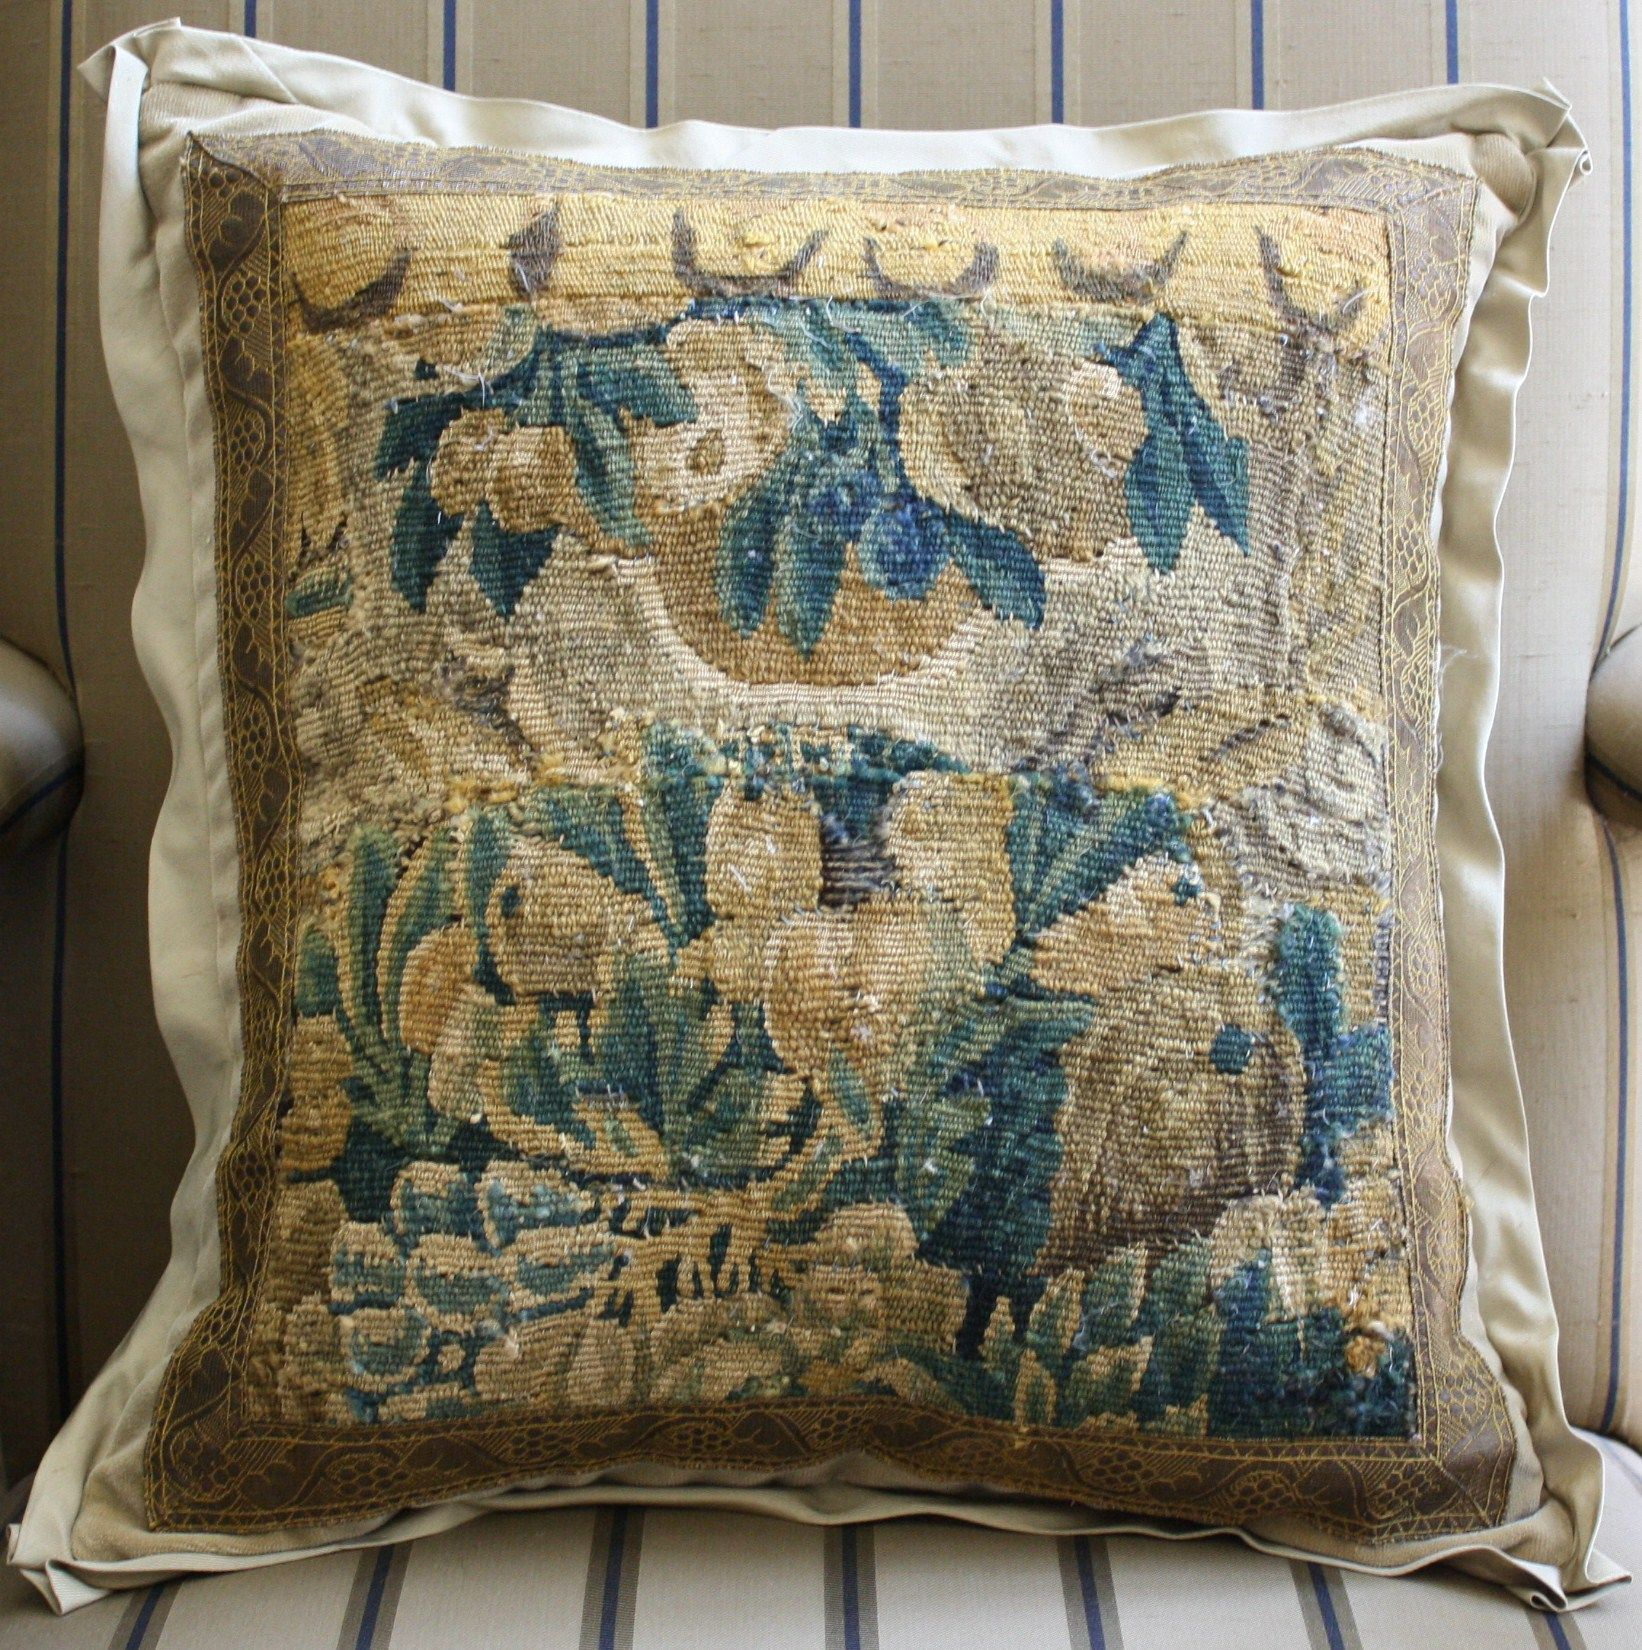 Beautiful Decorative Bed Pillows : 18th c. Flemish tapestry pillow by E Alexander Designs E Alexander Designs Pinterest ...